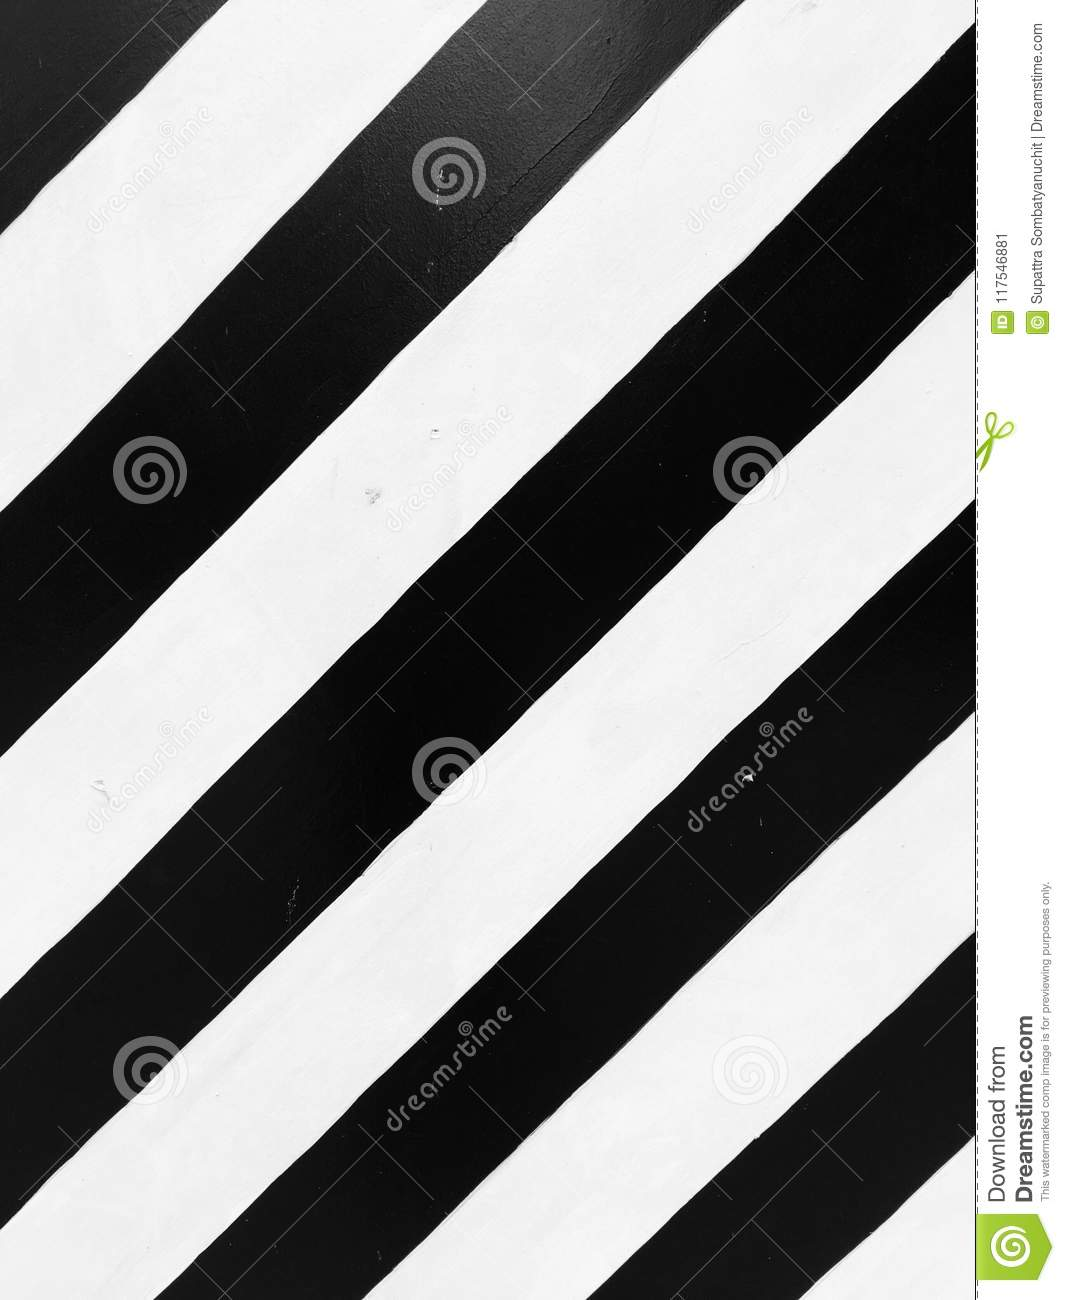 The black and white surface is a contrasting color